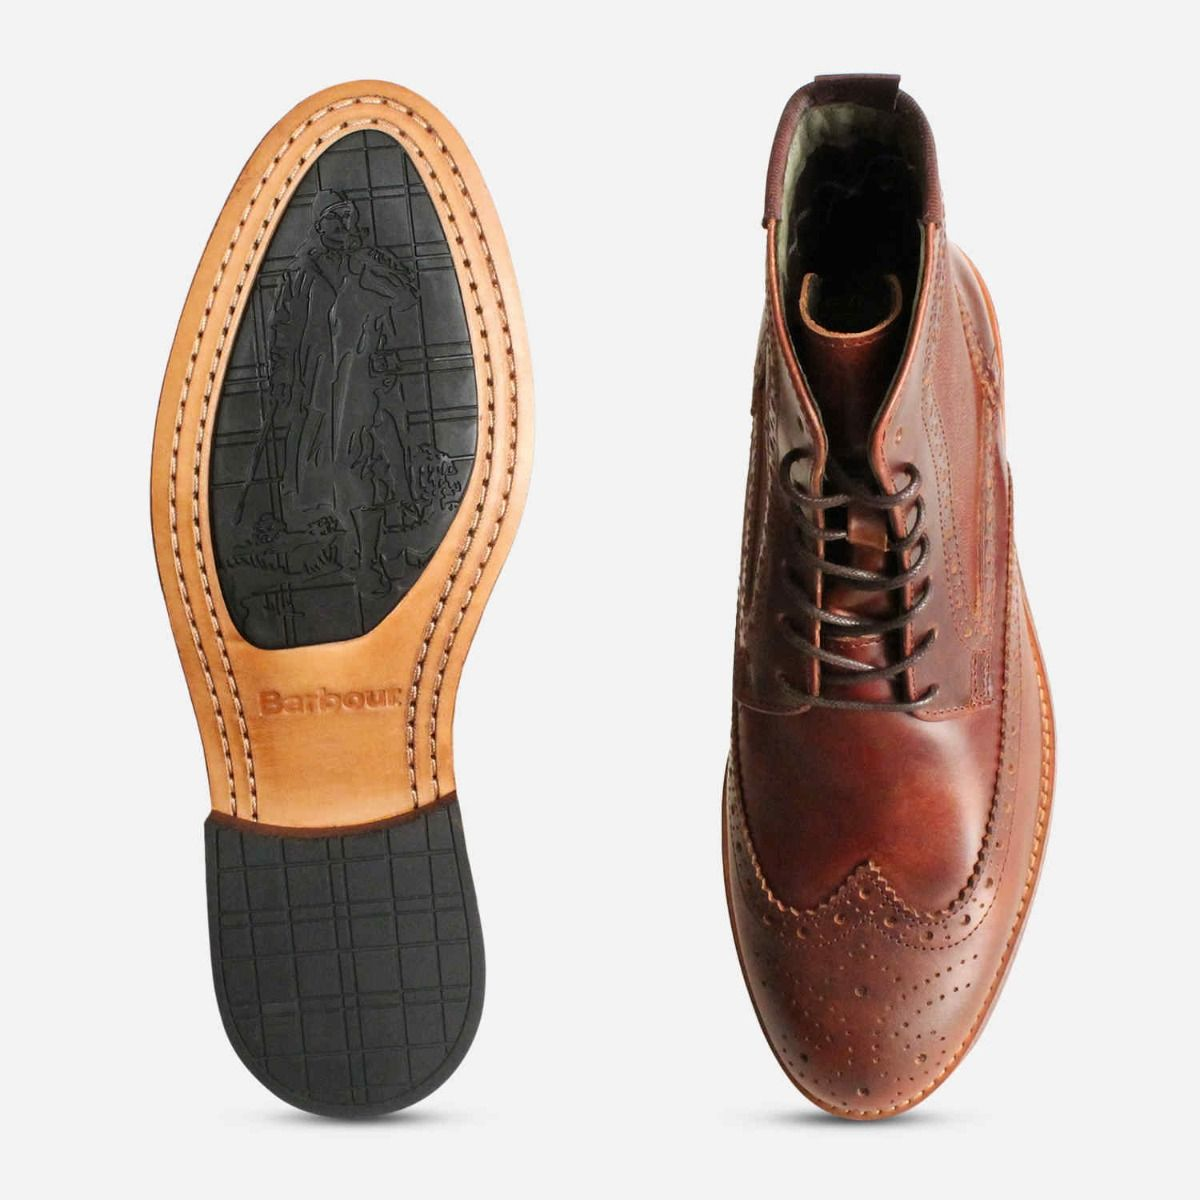 Barbour Belford Country Brogues in Mahogany Brown